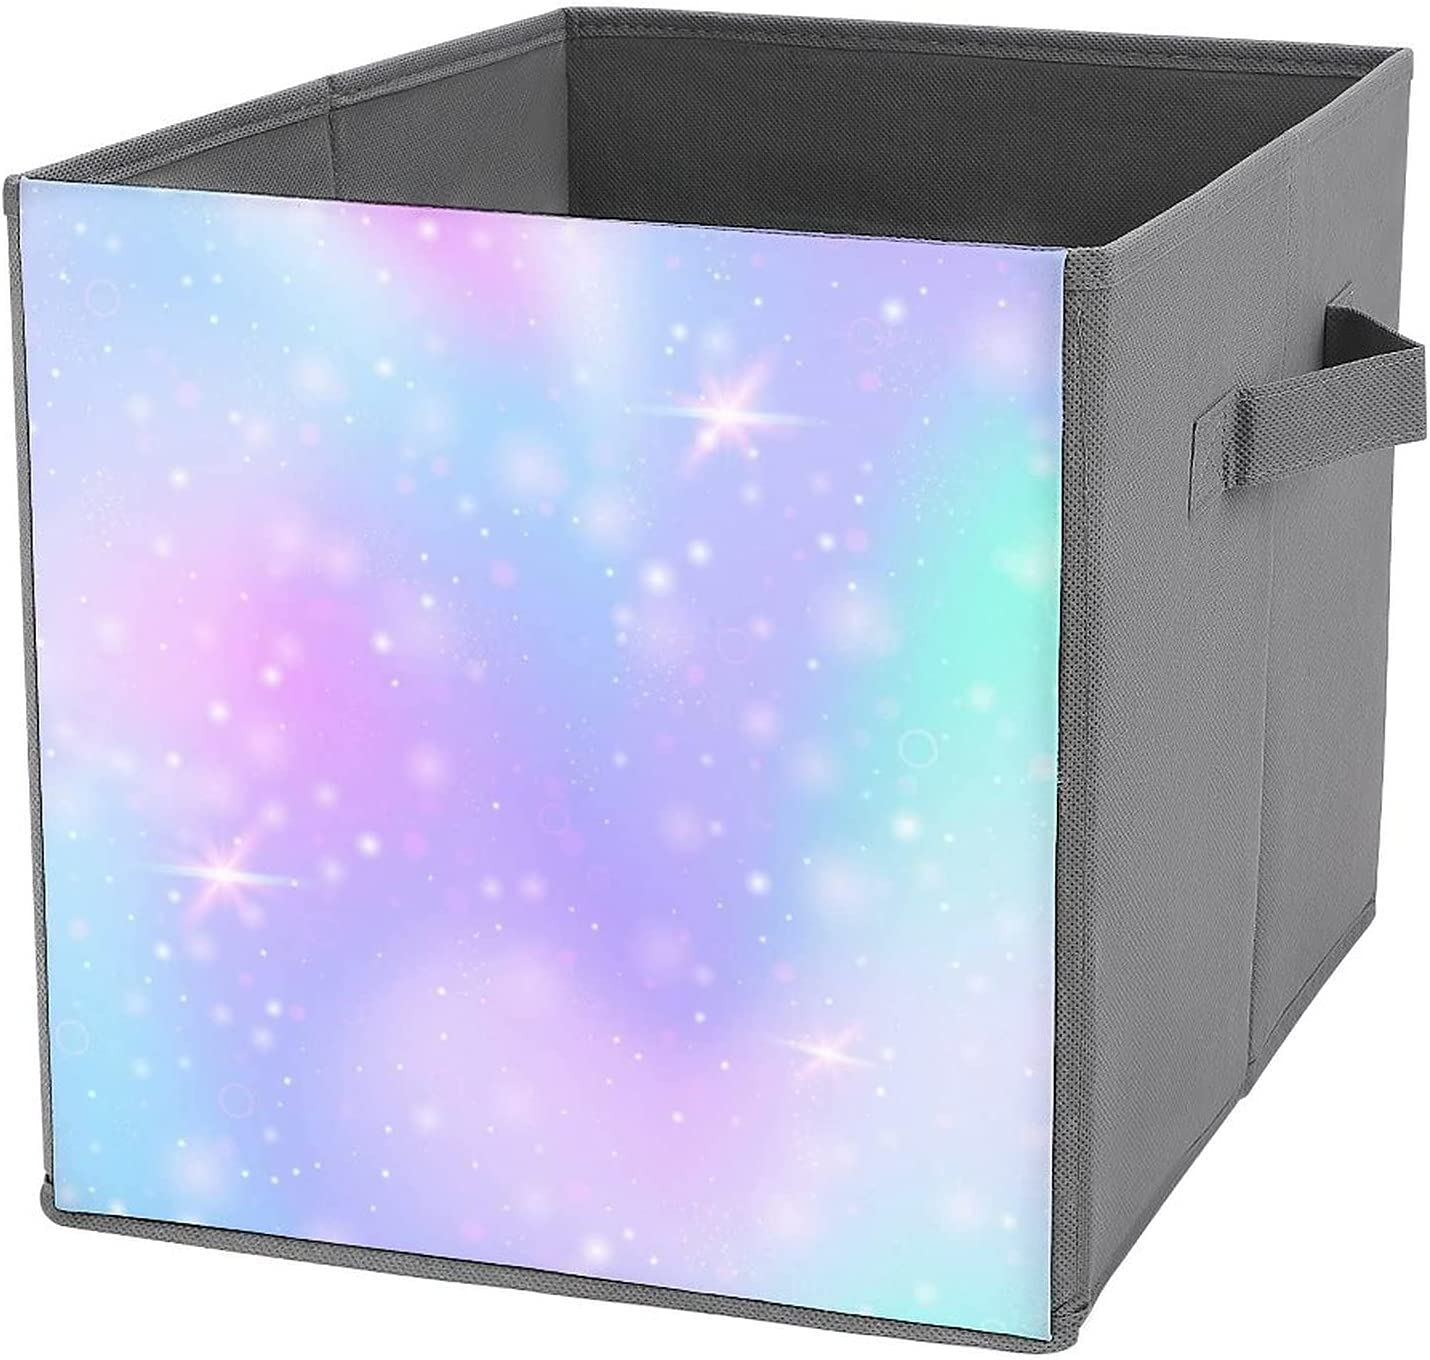 Large-scale sale DGHREAW San Diego Mall Dreamy Colors Foldable Storage Bin Basket Collapsible Cu